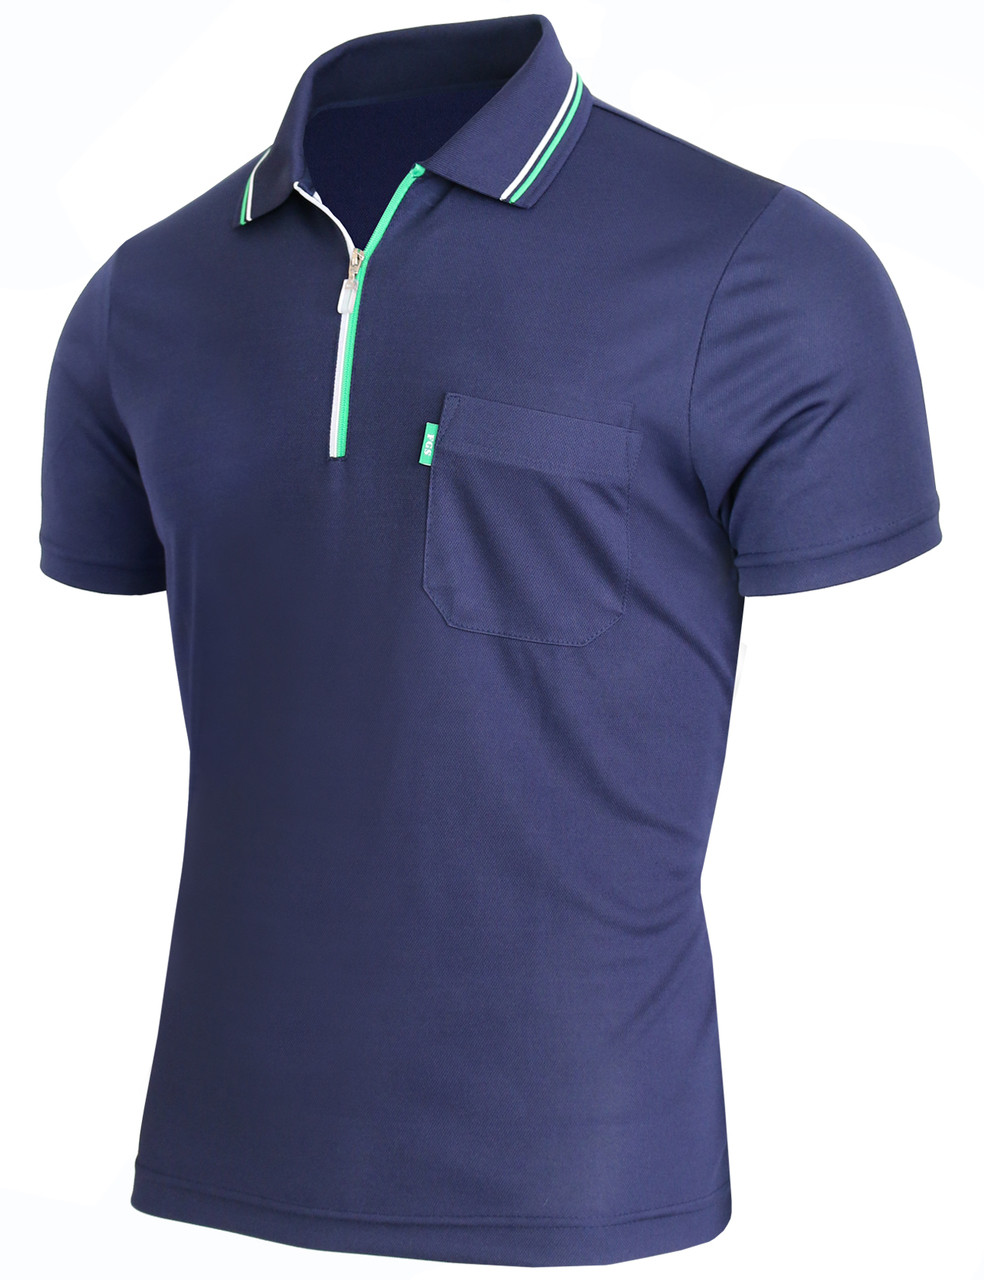 23e1c7f85 Short Sleeve Dri Fit Zip Polo Shirt-Unisex